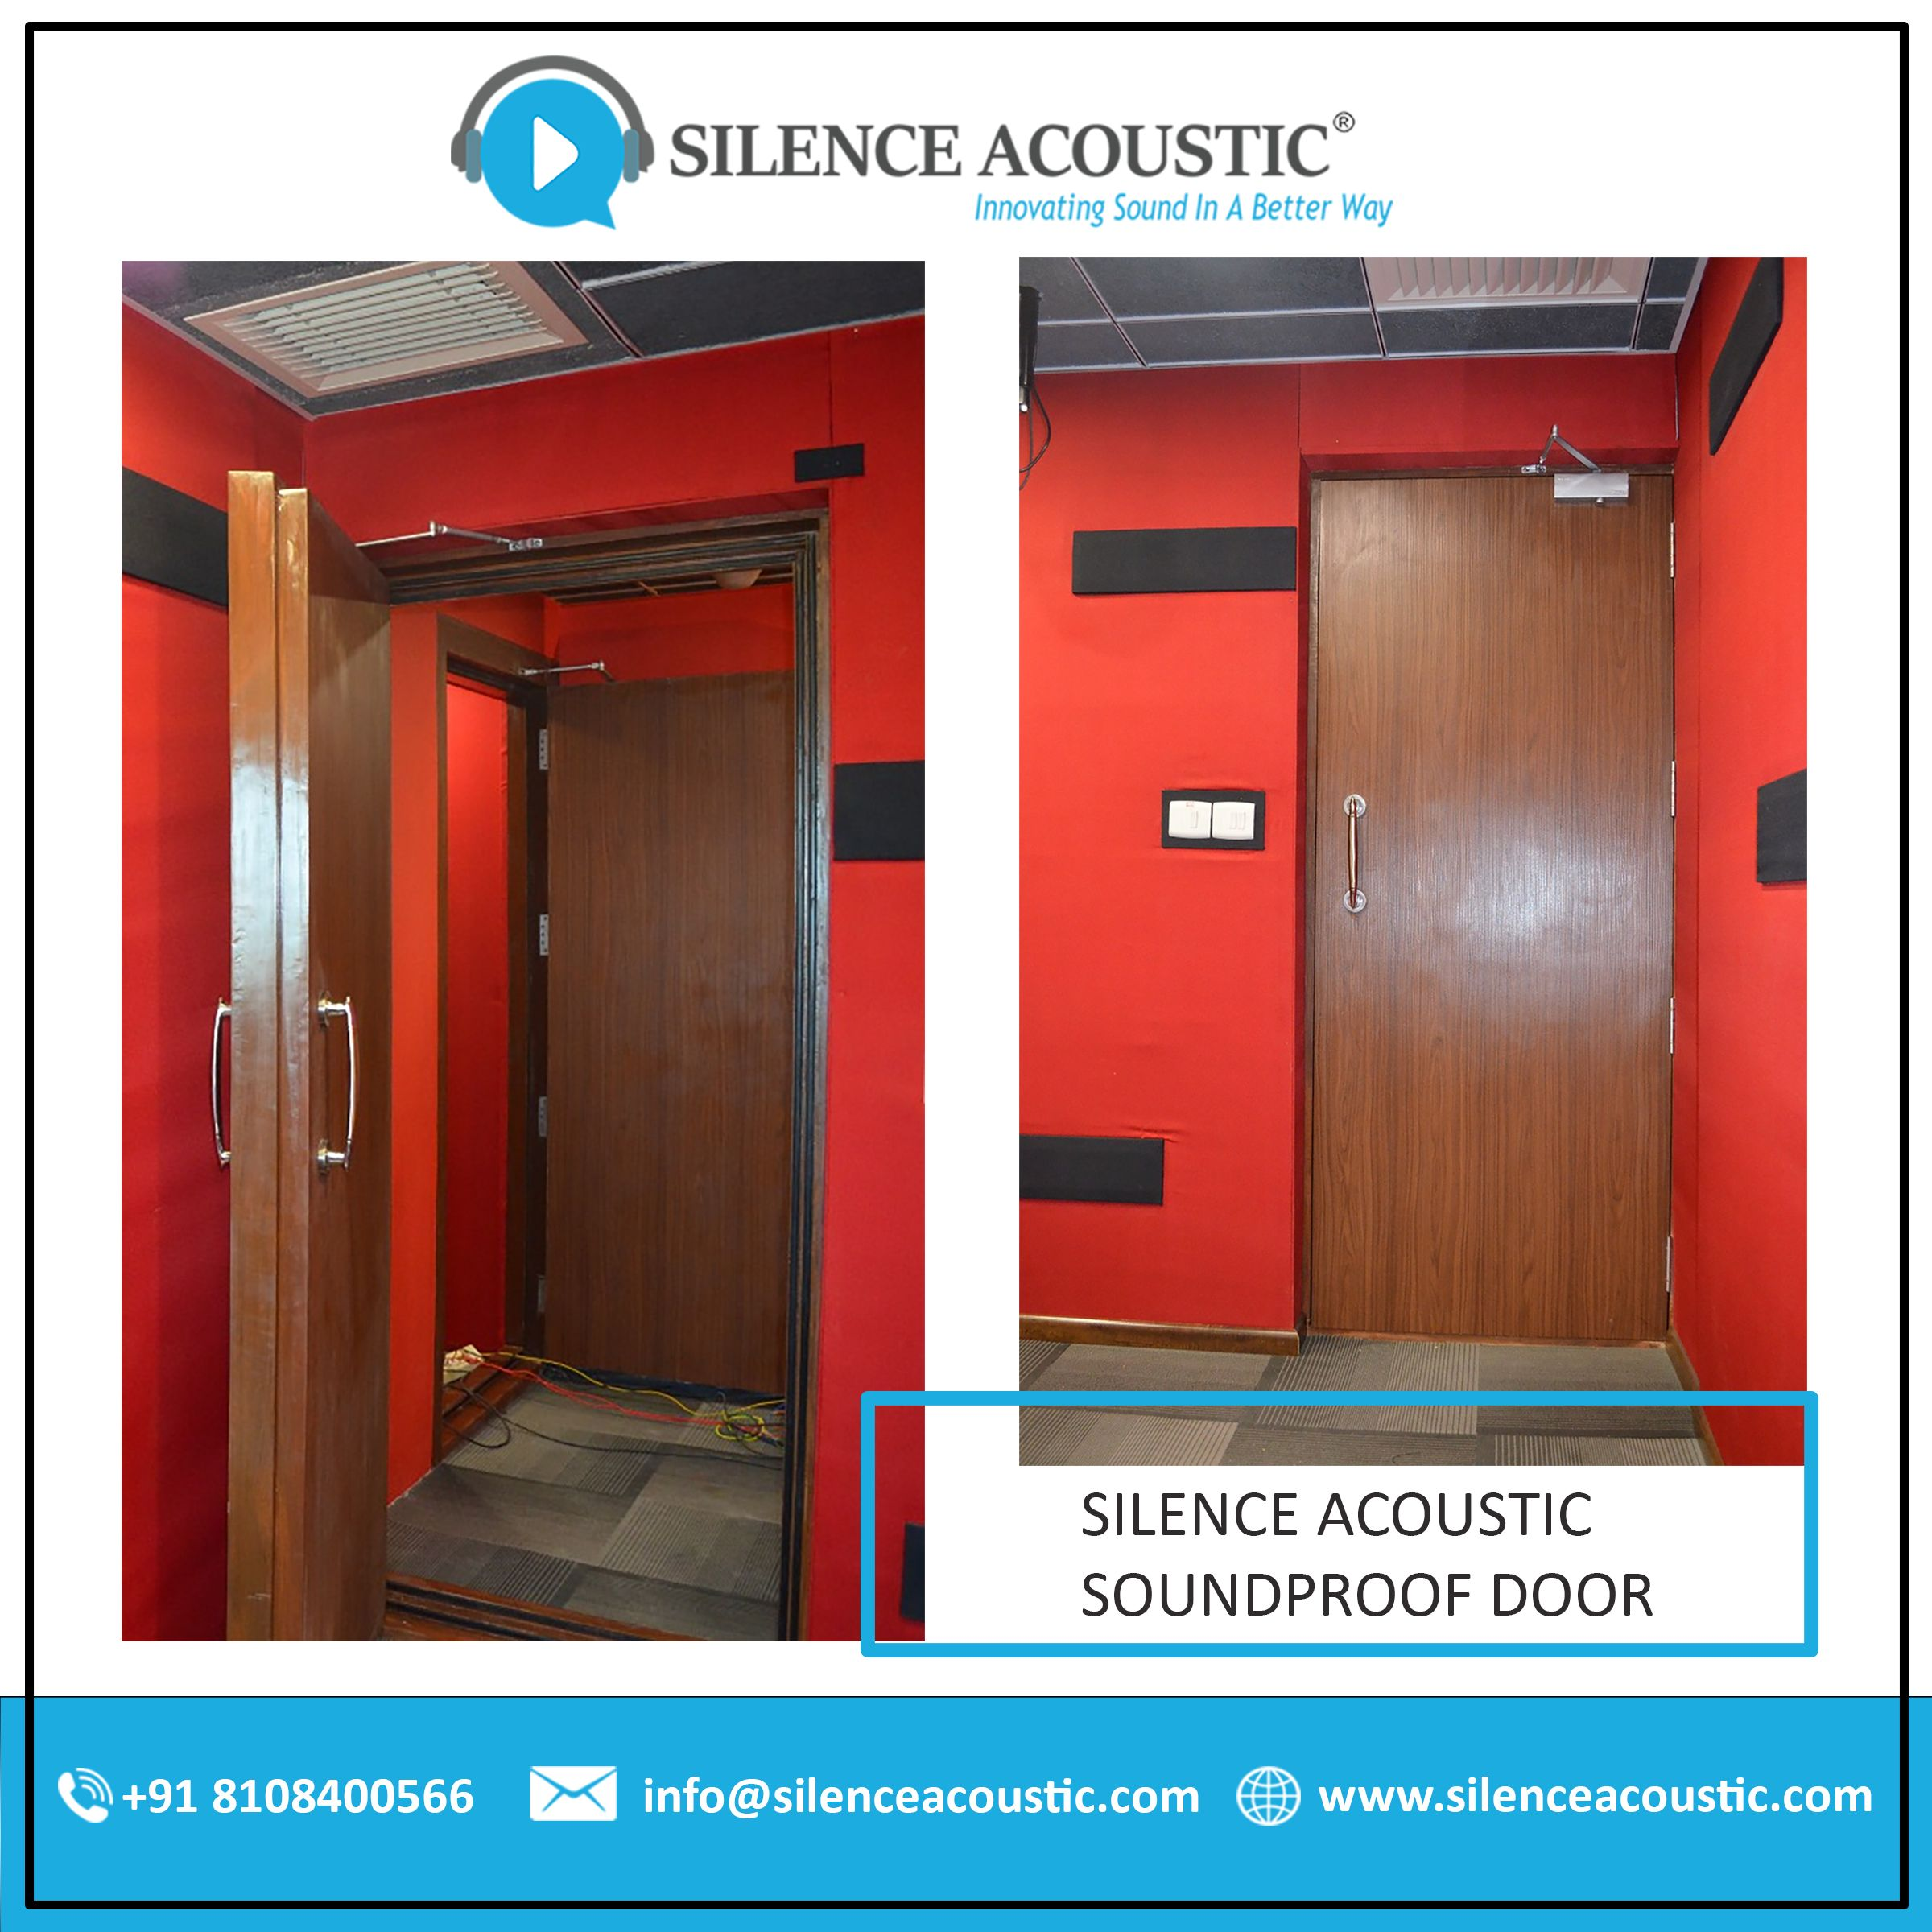 Soundproof Door In 2020 Doors Sliding Door Price Sound Proofing